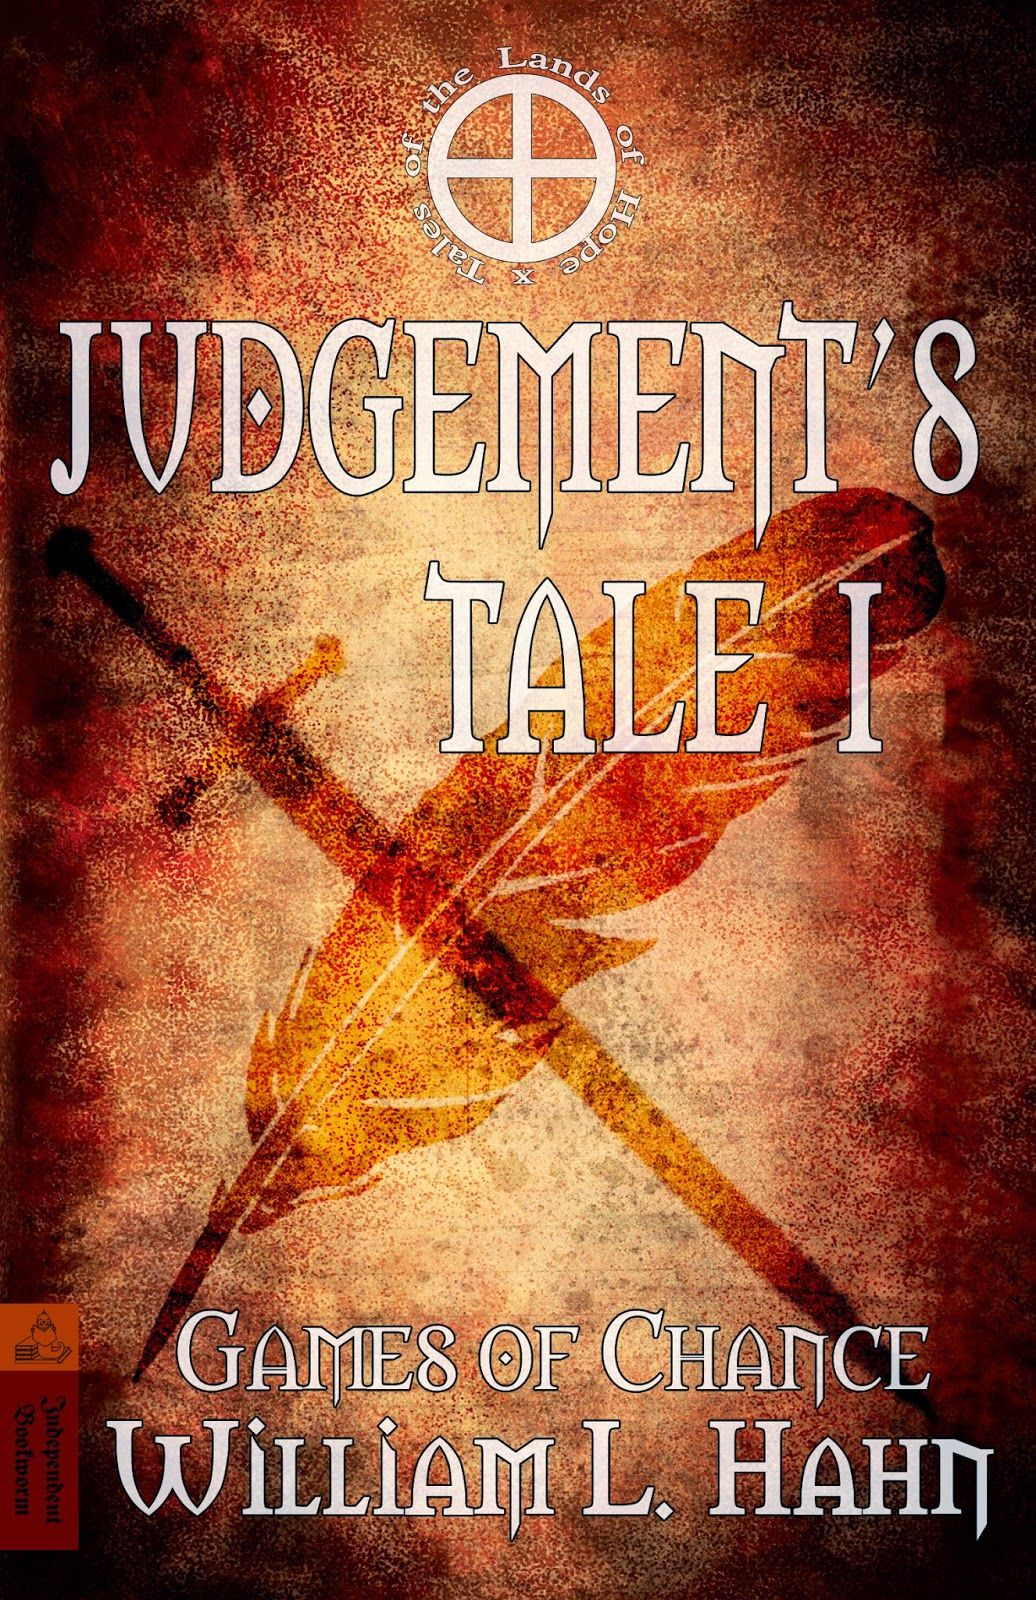 Judgement's Tale by William L. Hahn Audio Sample from Epic